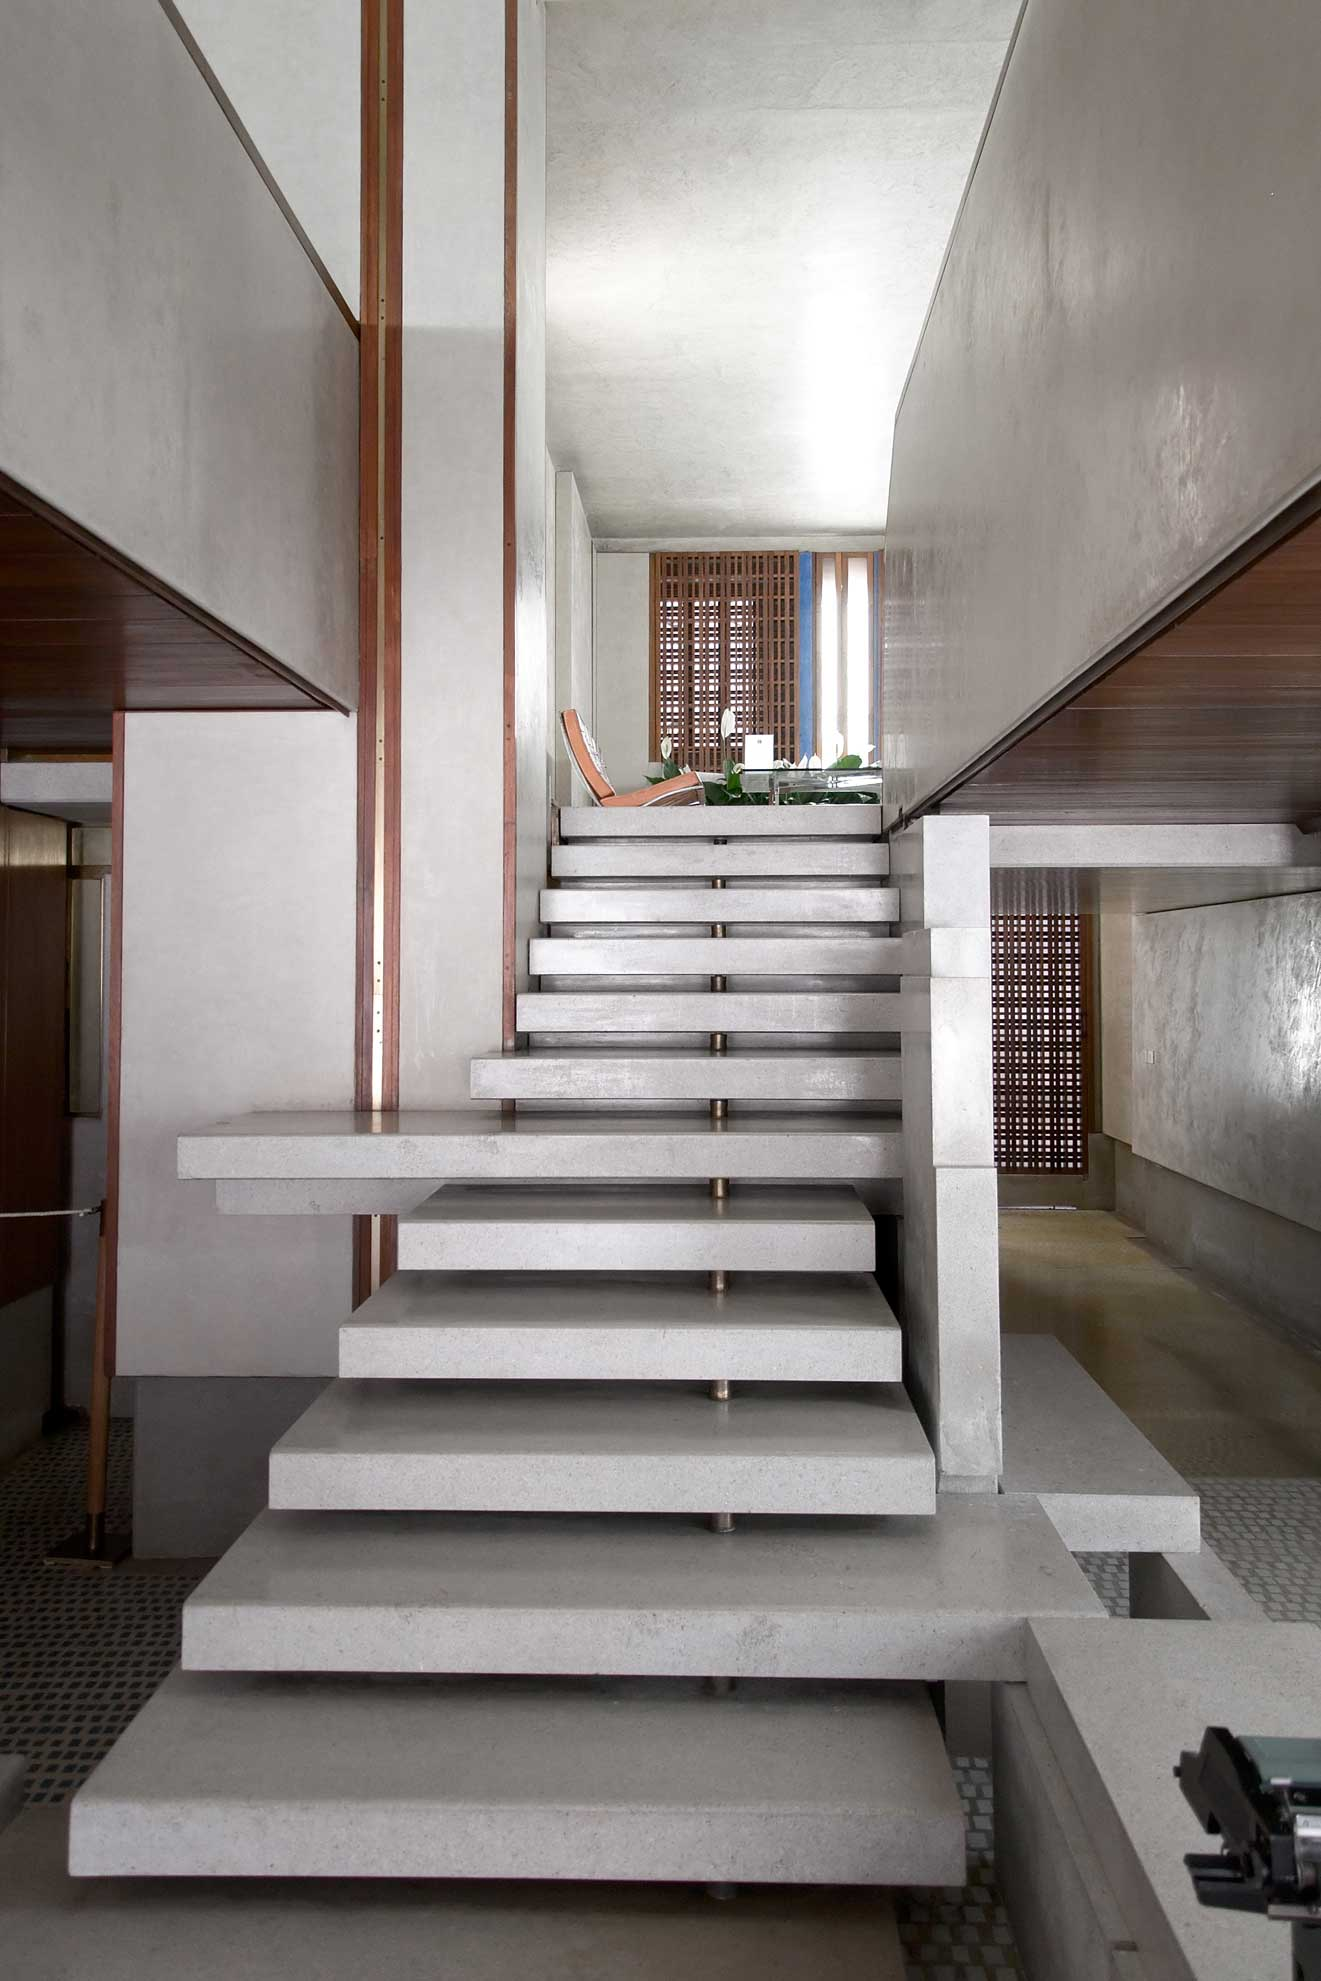 Olivetti showroom in venice by carlo scarpa yellowtrace - Loft house plans inside staircase ...